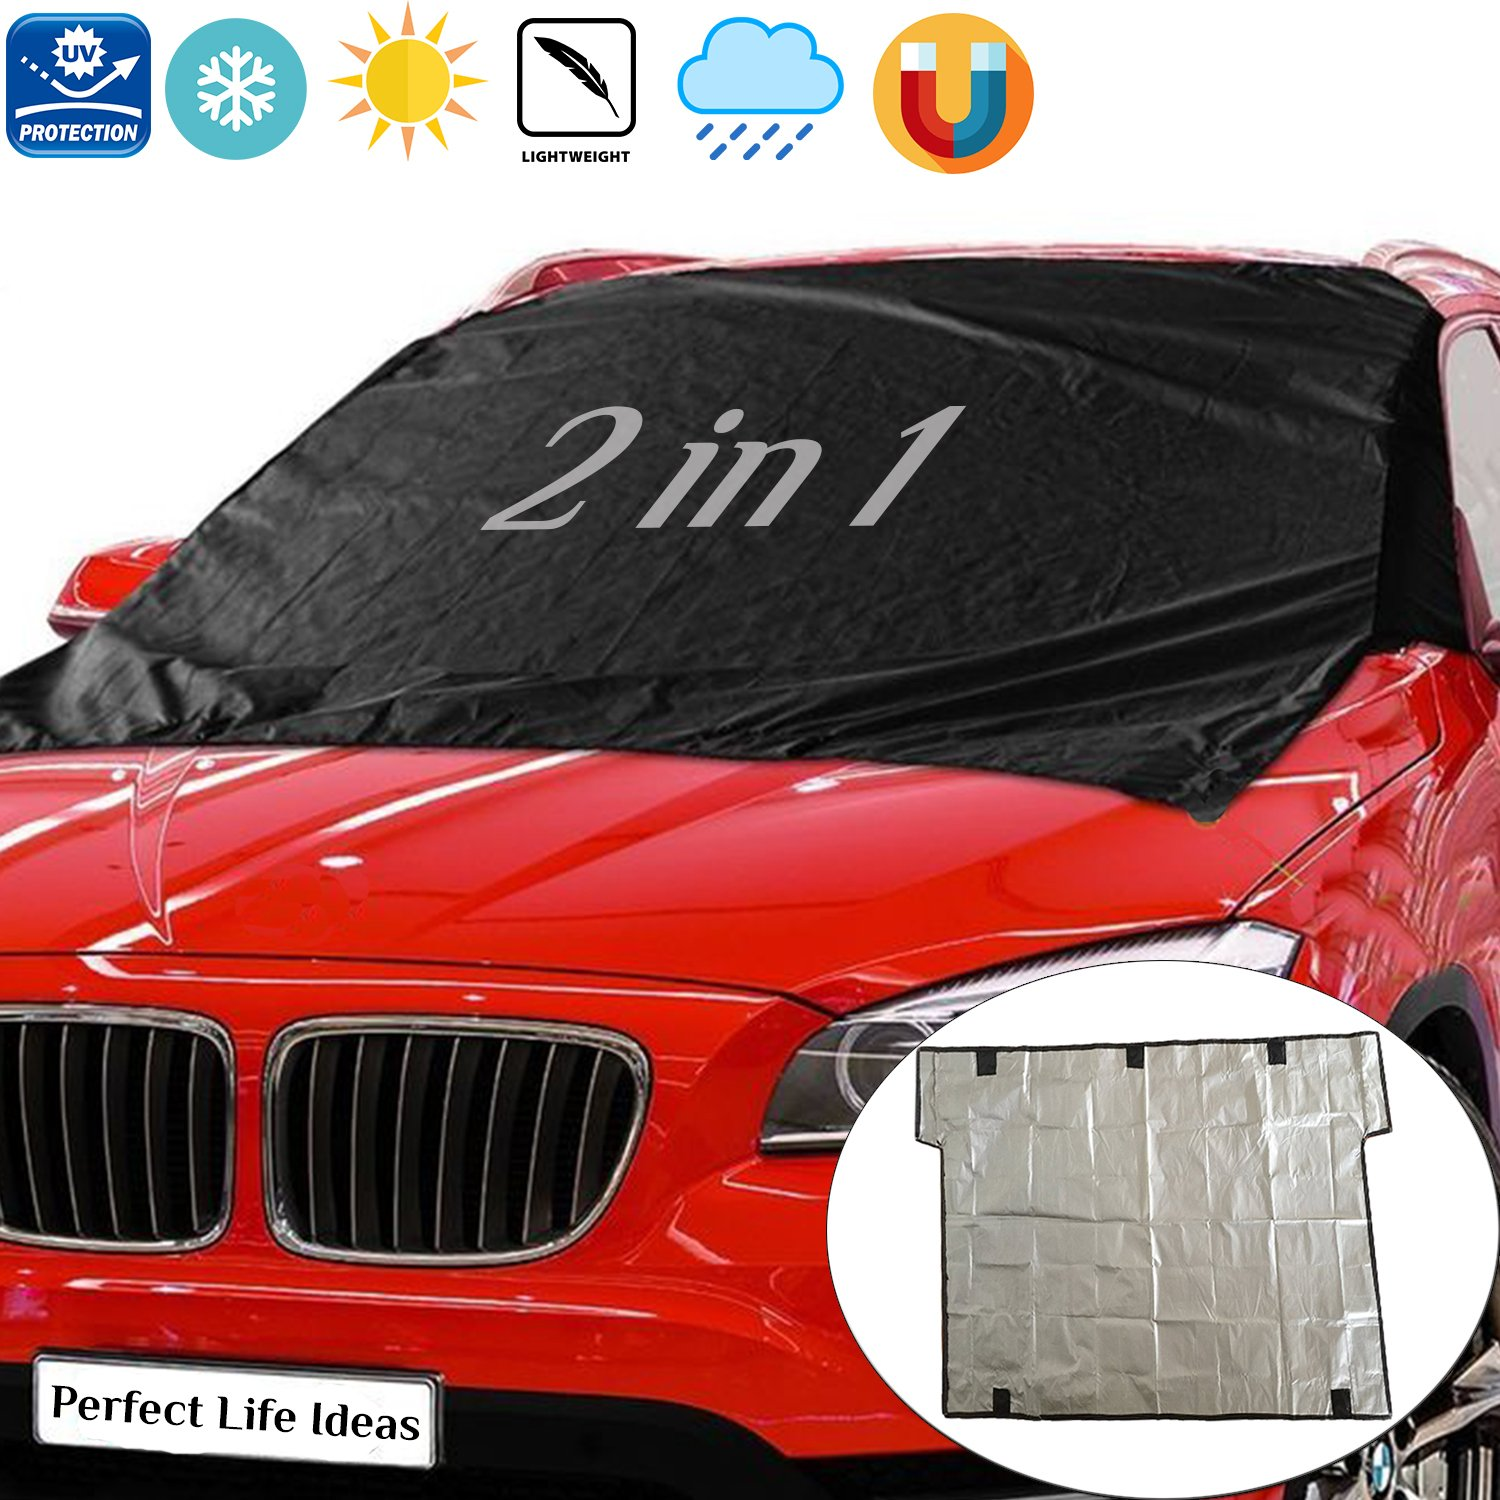 Windshield Ice and Snow Cover – Frost Guard and Ice Screen for Most Vehicle with Magnetic Edges by Perfect Life Ideas